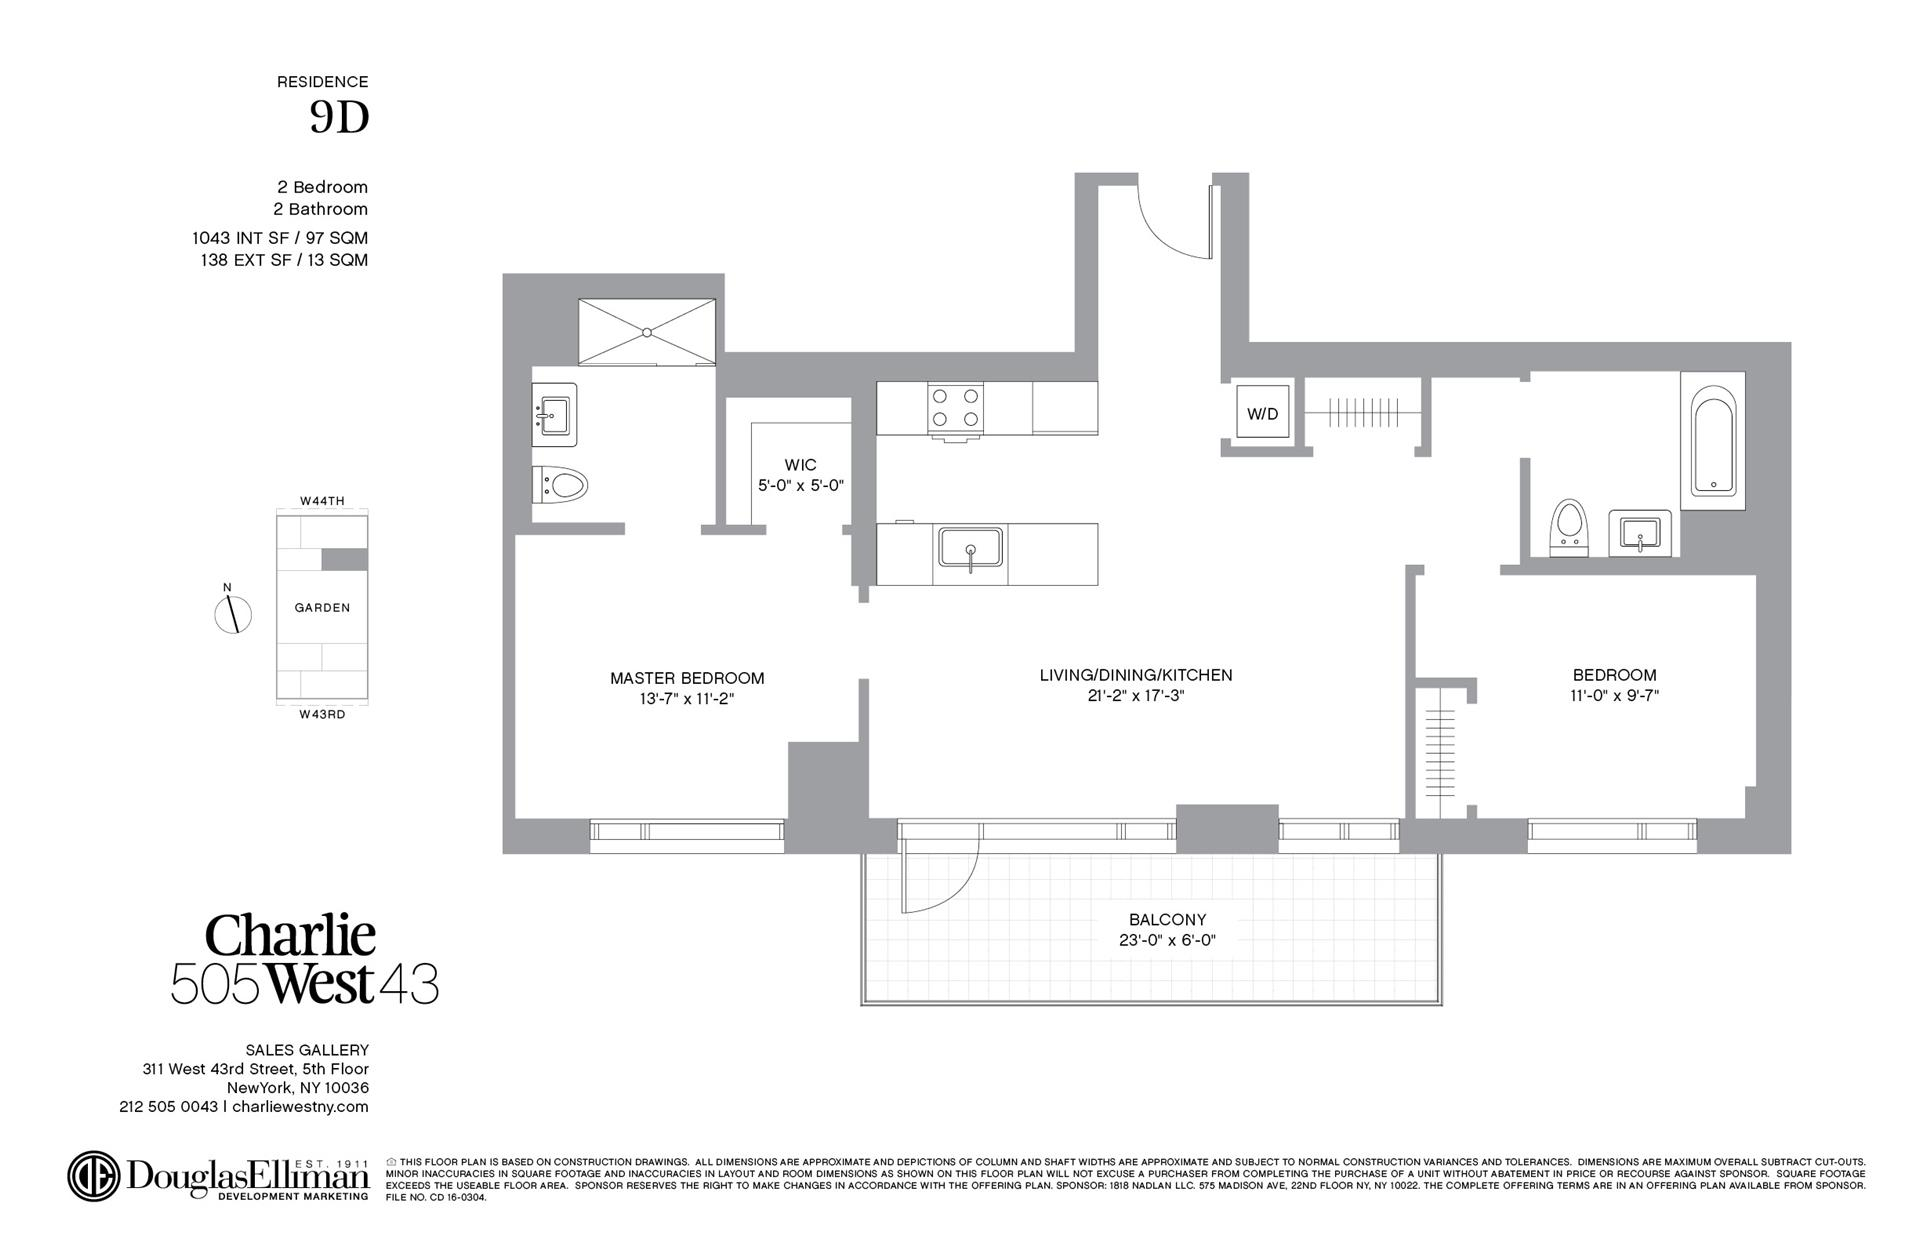 Floor plan of 505 West 43rd St, 9D - Clinton, New York